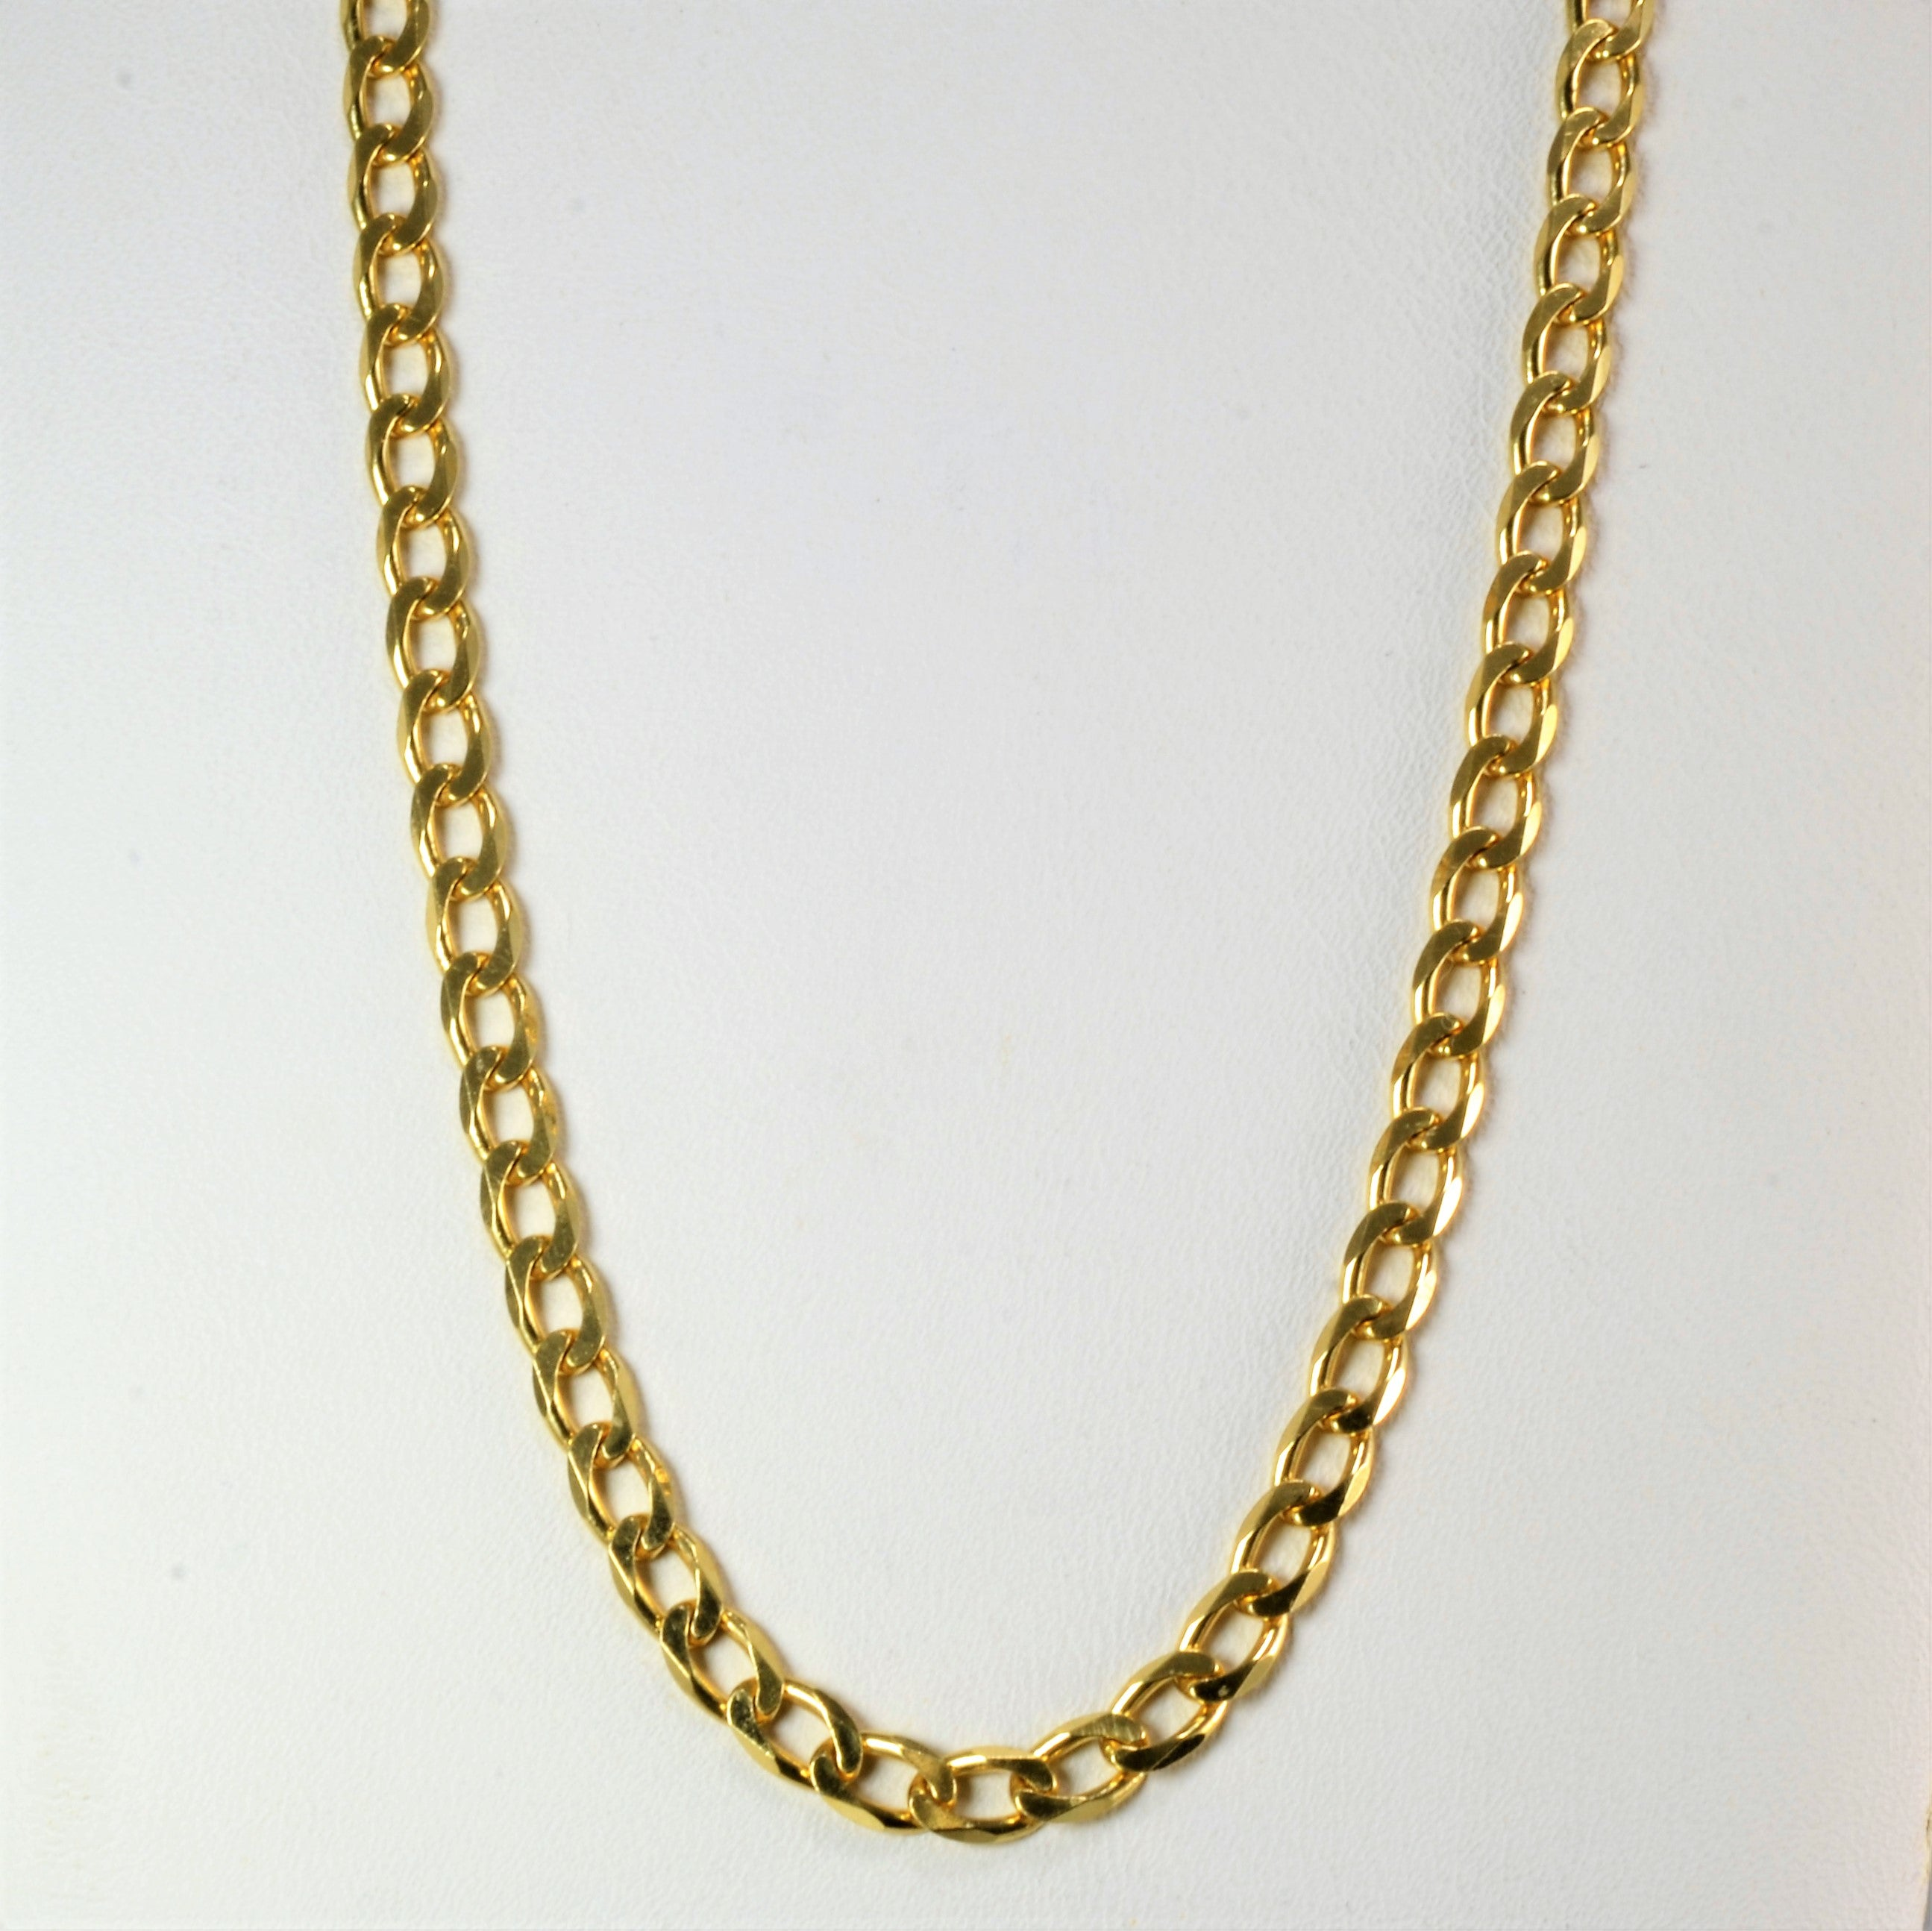 'Birks' Curb Link Chain | 24''|